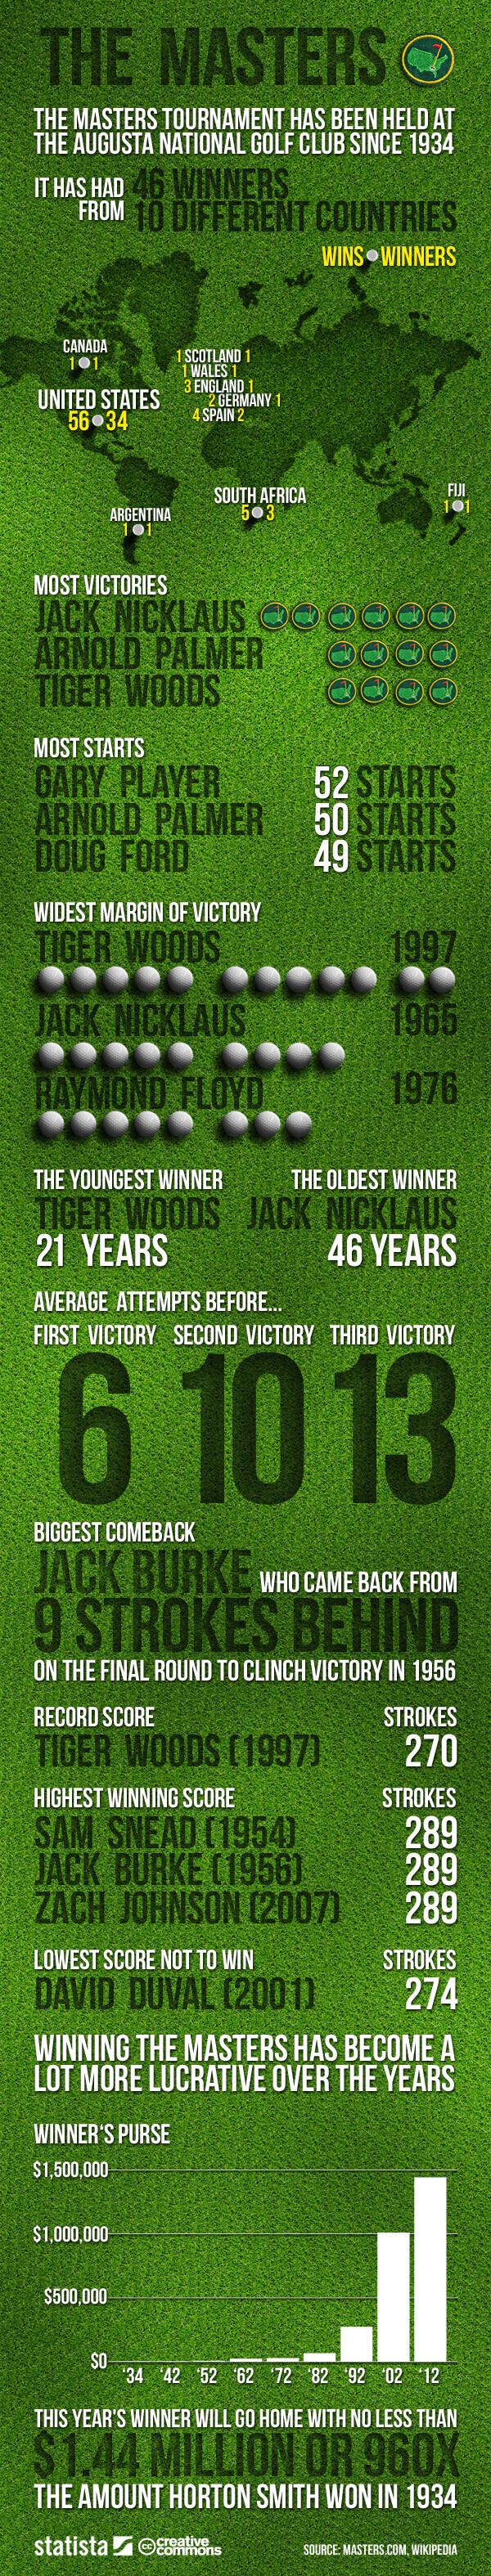 Infographic: The Masters | Statista